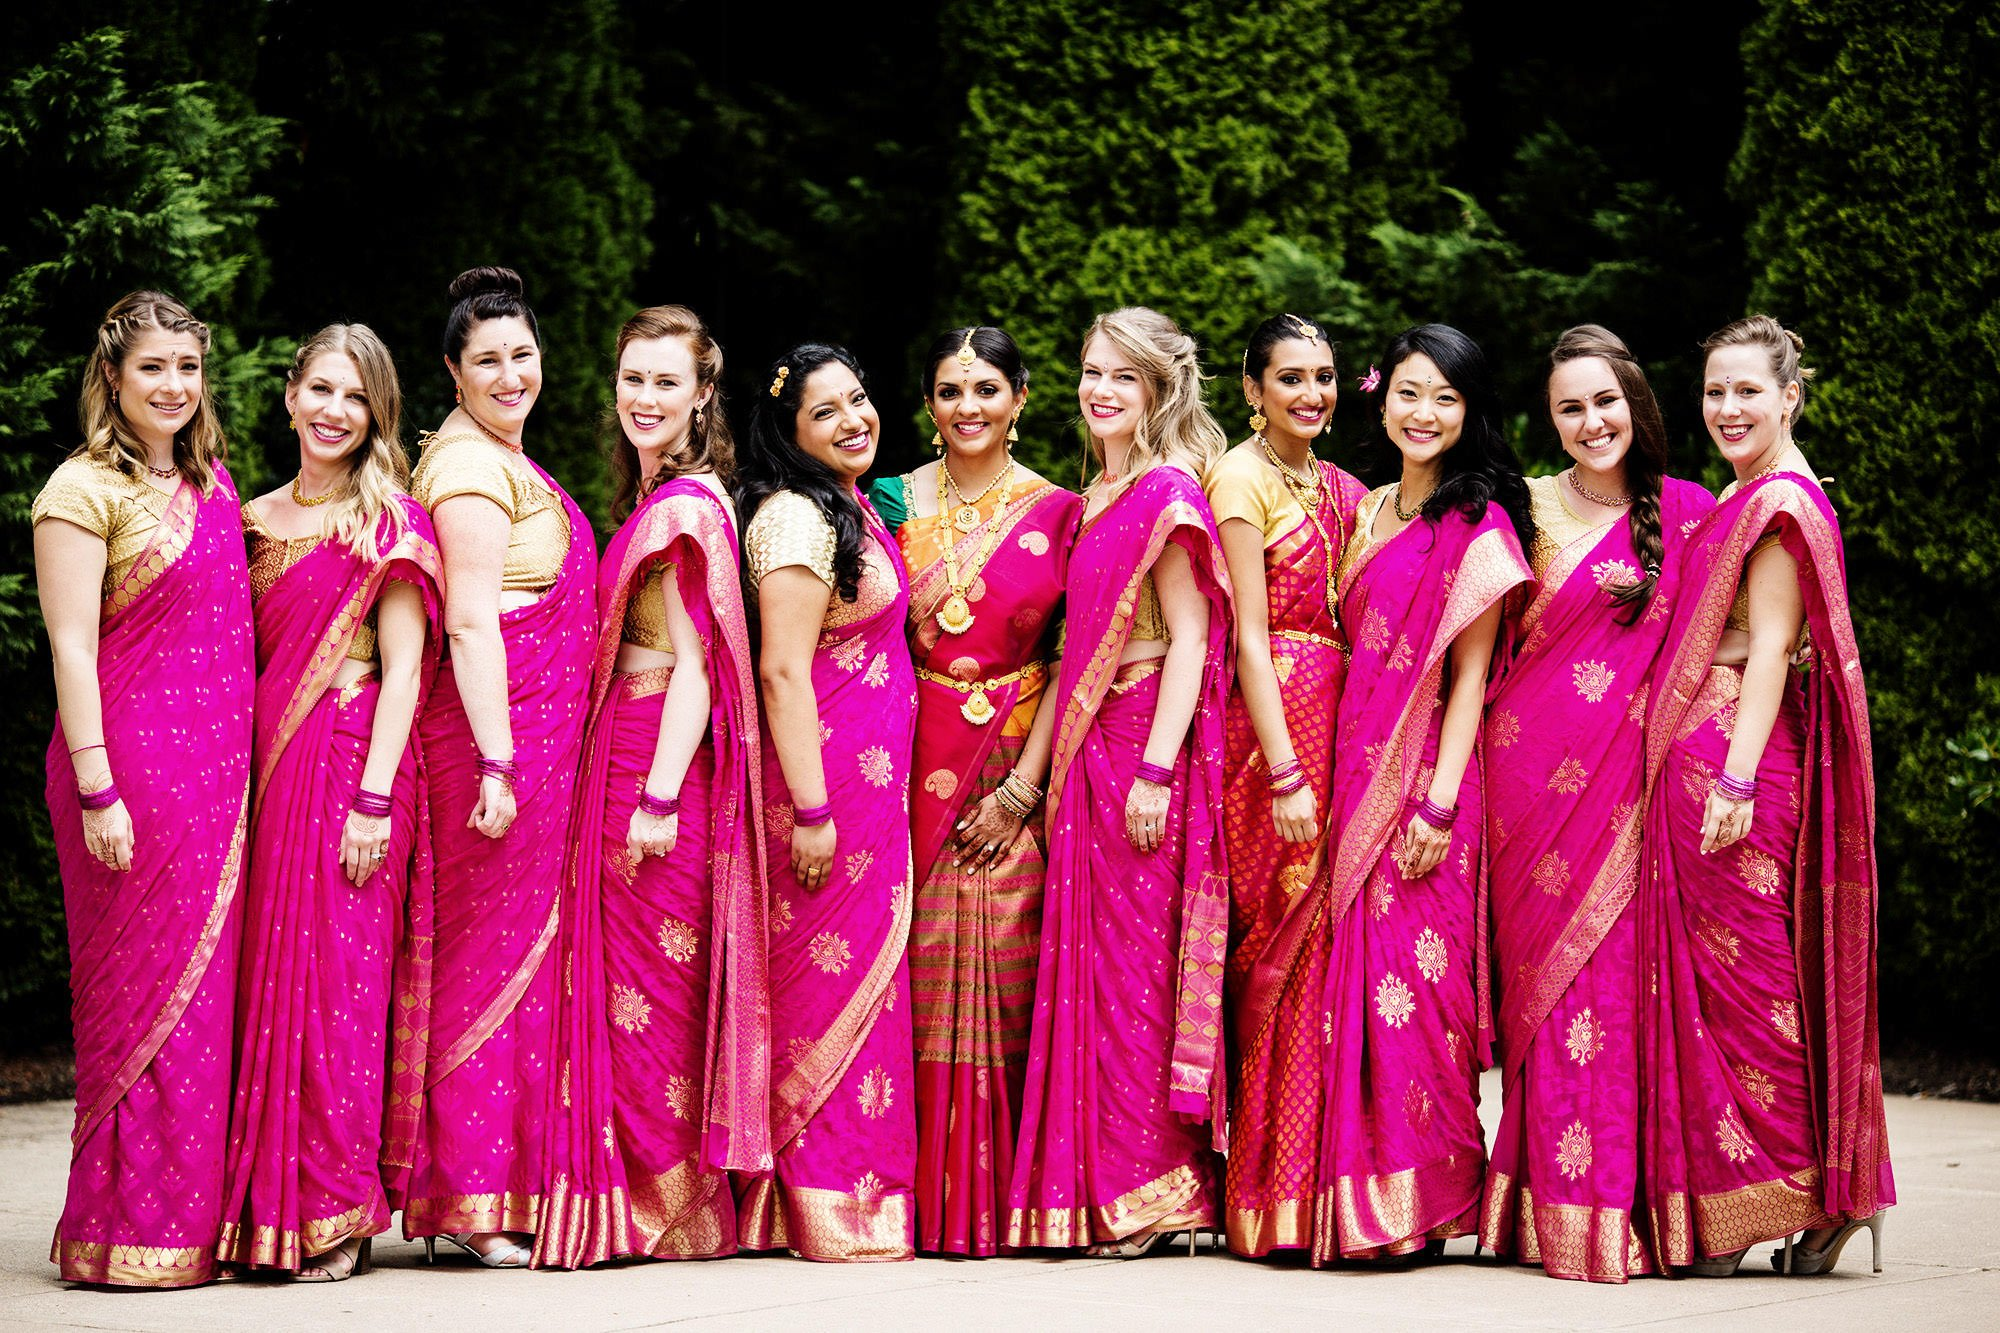 A portrait of bridesmaids wearing Indian dresses.